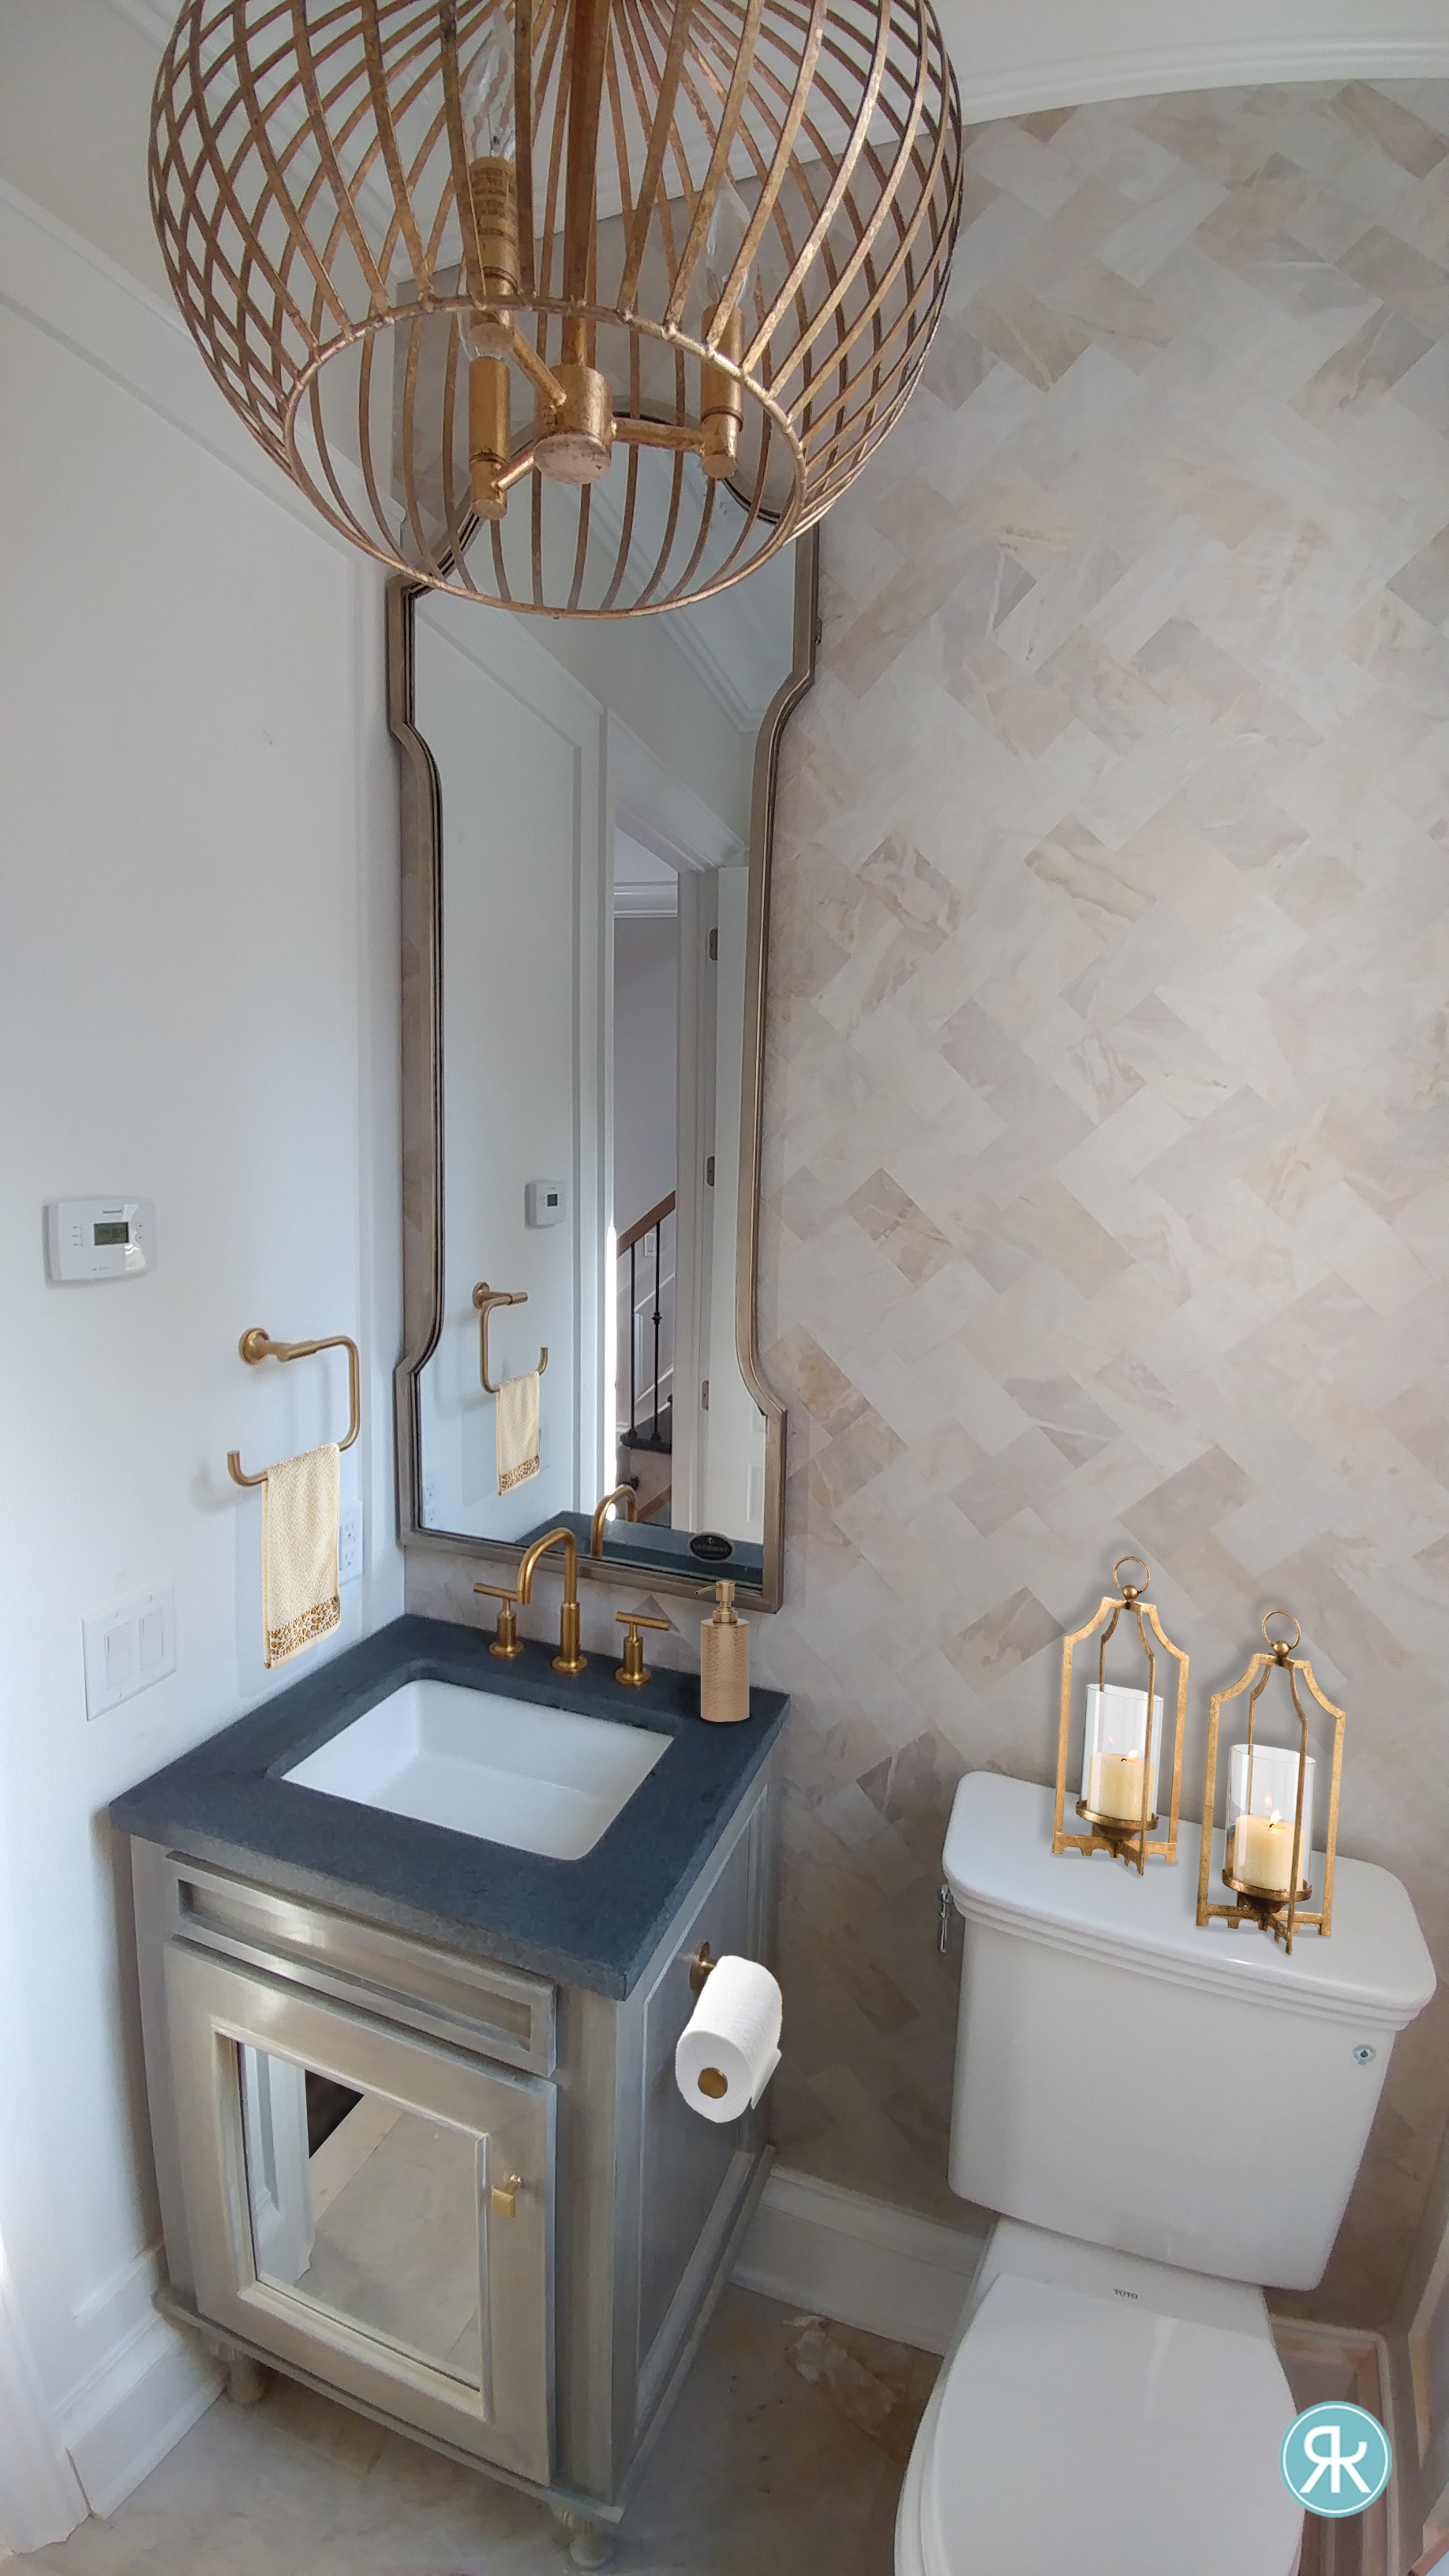 Bathroom-PowderRoom-Luxury-Tiles-Herringbone-Custom-Vanity-Brass-Gold-Accents-Vertical-Mirror-Jovita-Uttermost-Neutral-Smallspace-Renovate-InteriorDesign-Regina-Kay-Interiors.jpg